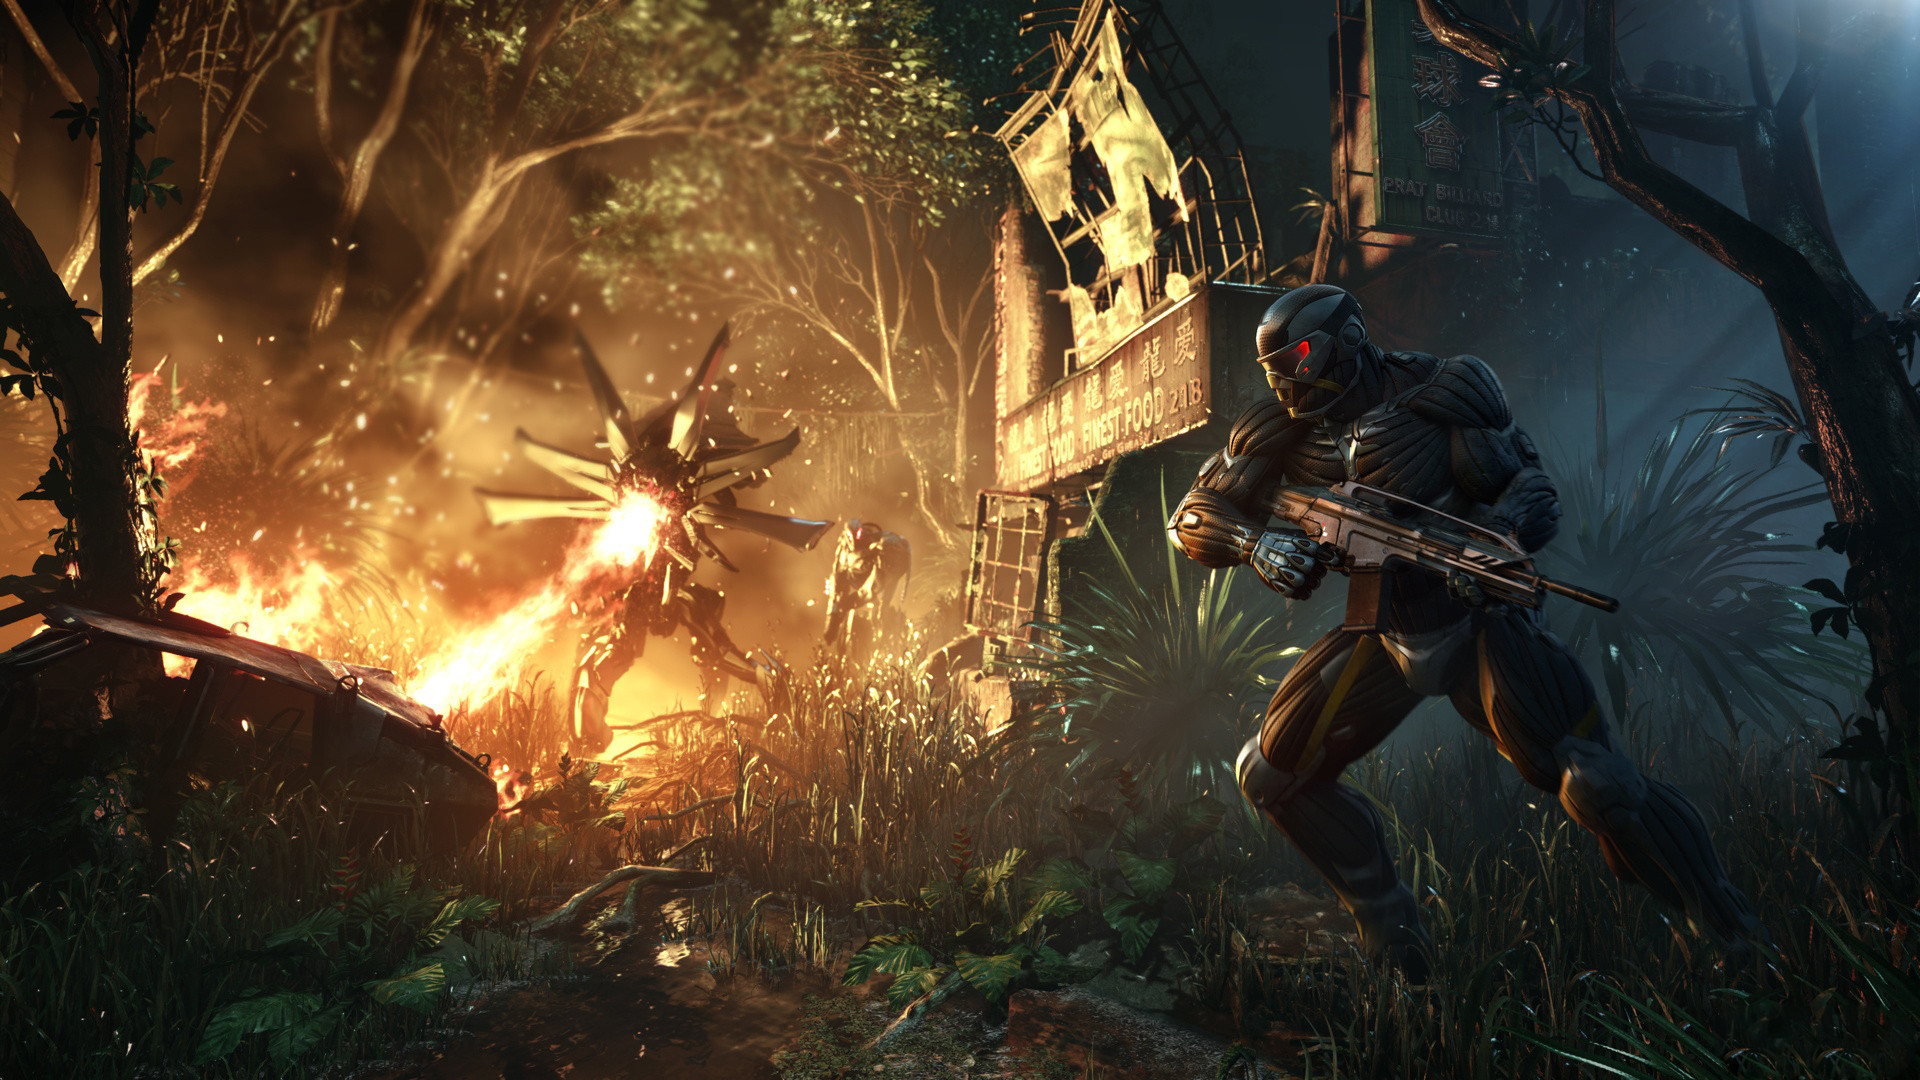 'Crysis 3' open beta now available, tutorial video released